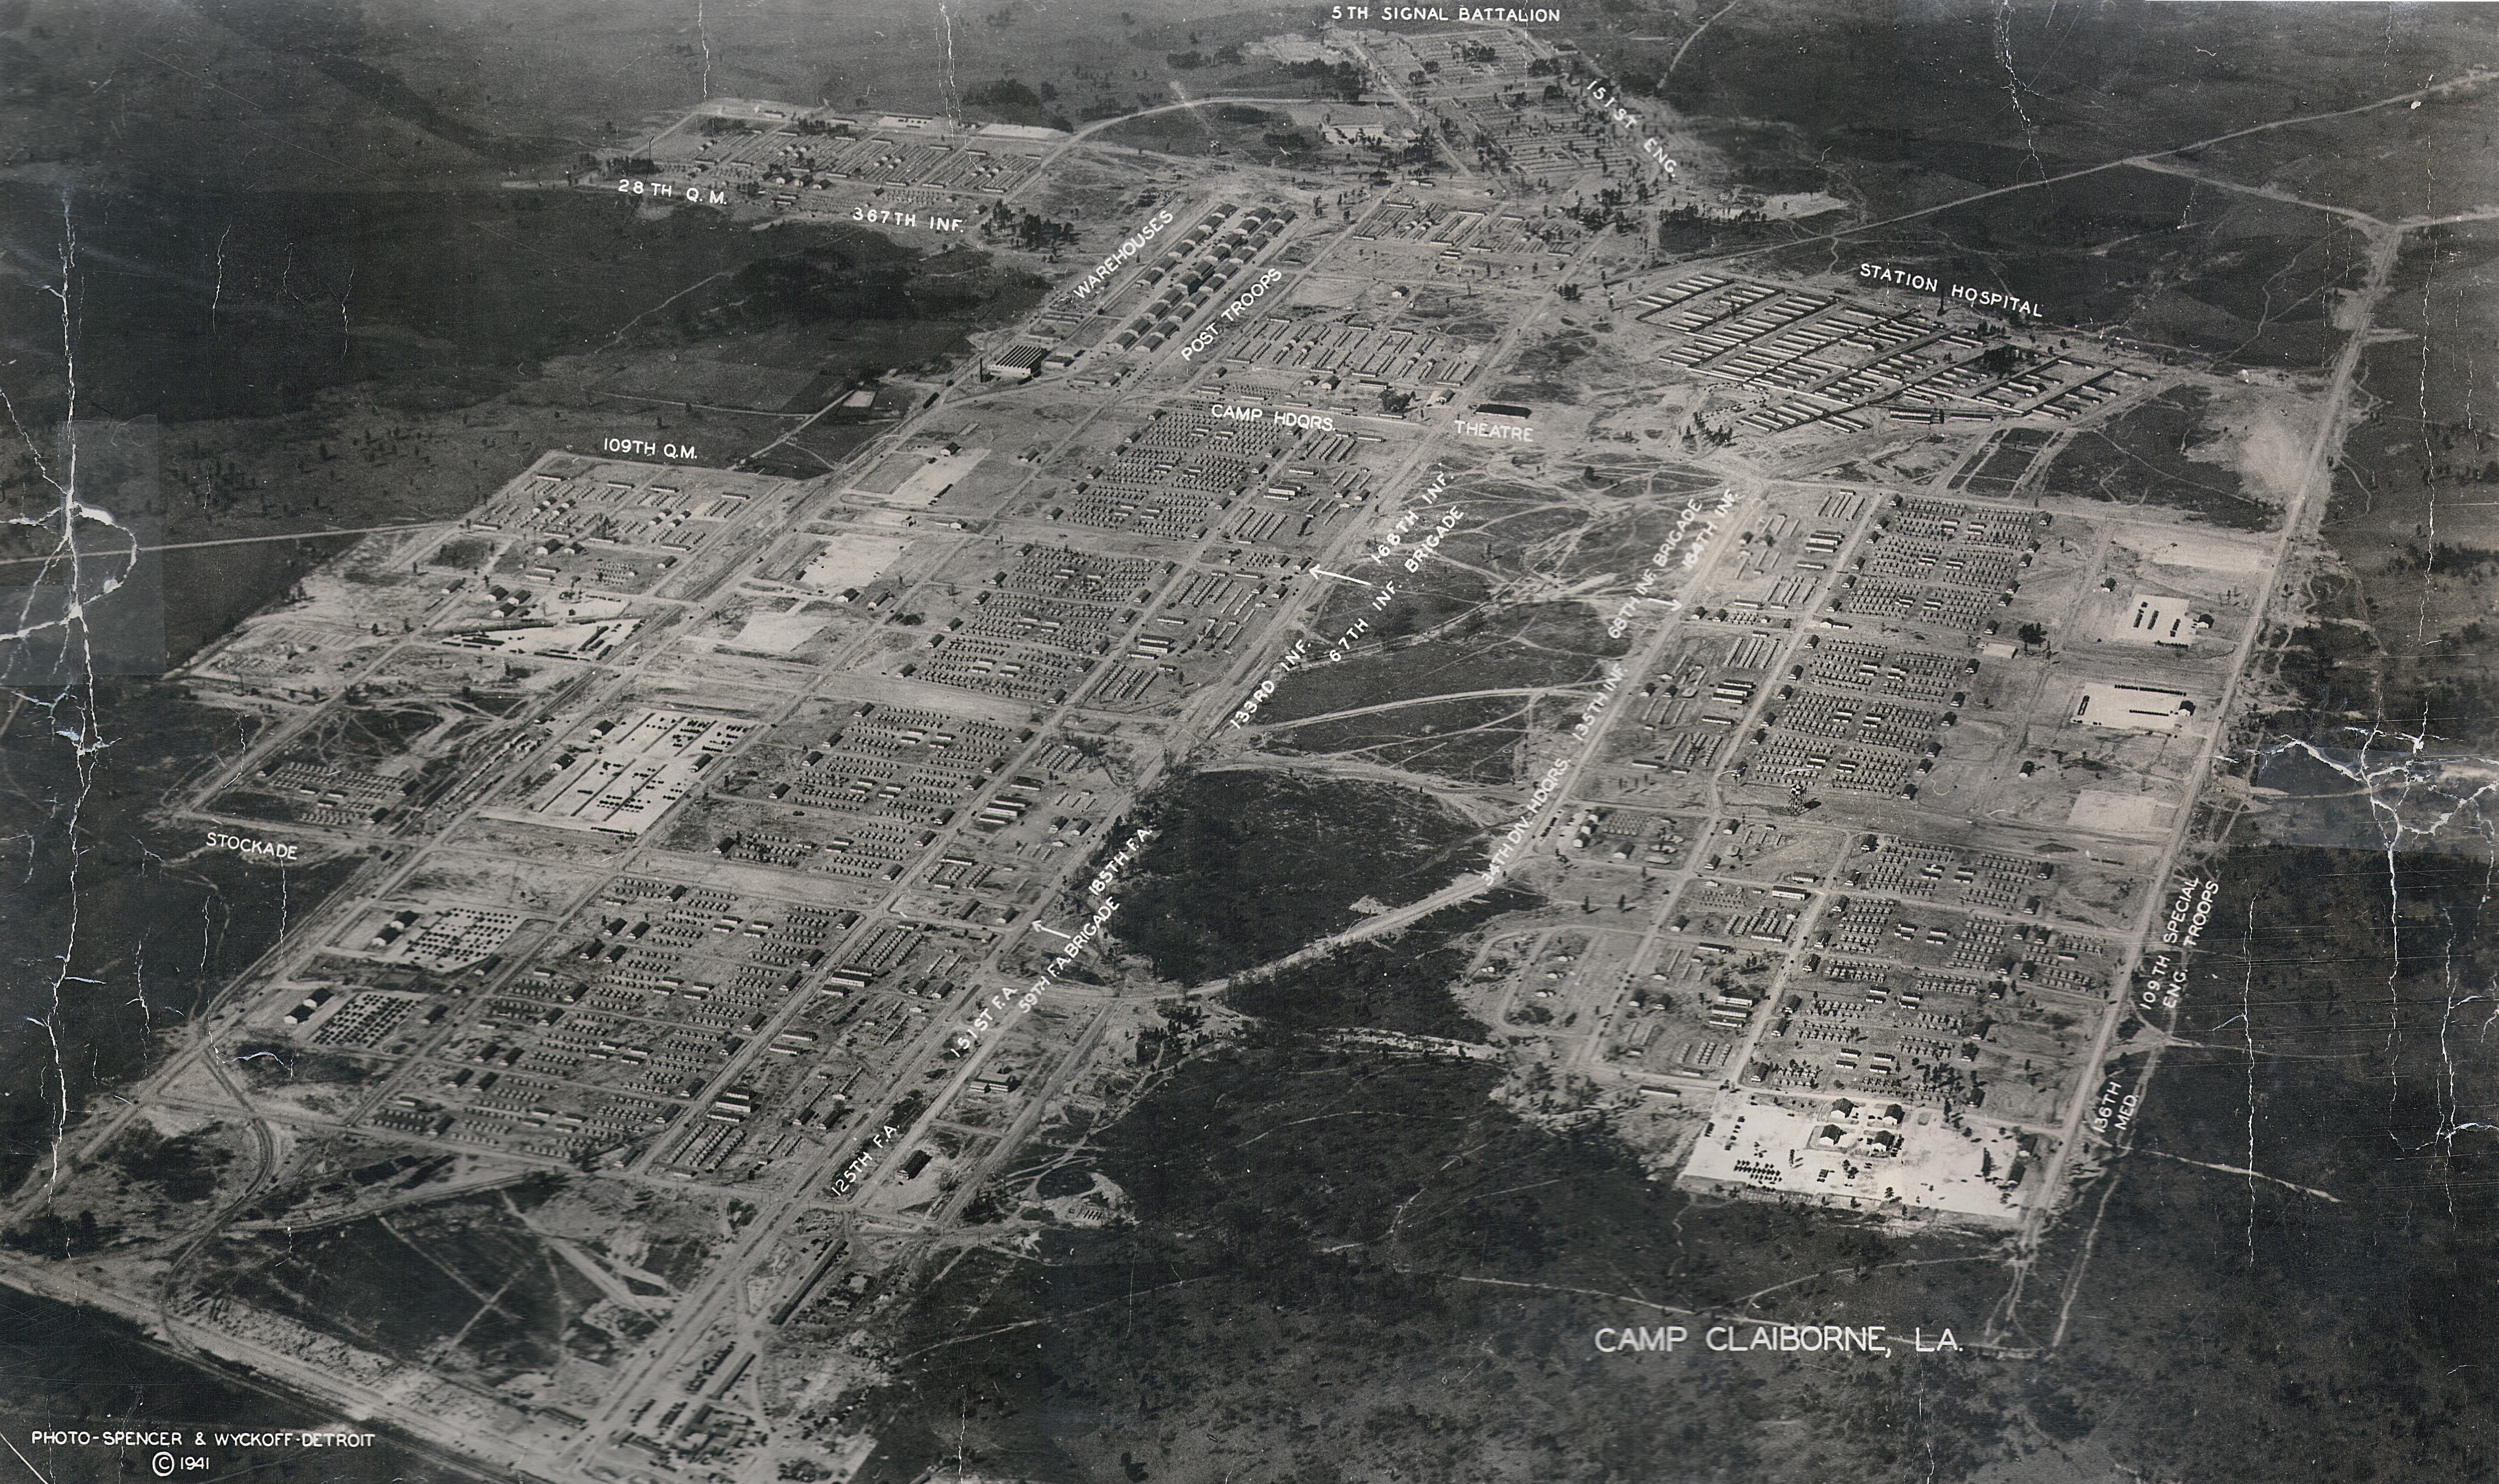 Camp%20Claiborne%201941%20Aerial%20Photograph San Antonio Map on virginia city map, santa fe map, galveston map, brazos river map, indianapolis map, poteet tx map, united states map, district of columbia map, honolulu map, lackland air force base map, usa map, salt lake city map, south tx map, ozona tx map, bexar county map, converse map, los angeles map, nacogdoches map, texas map, monterrey map,